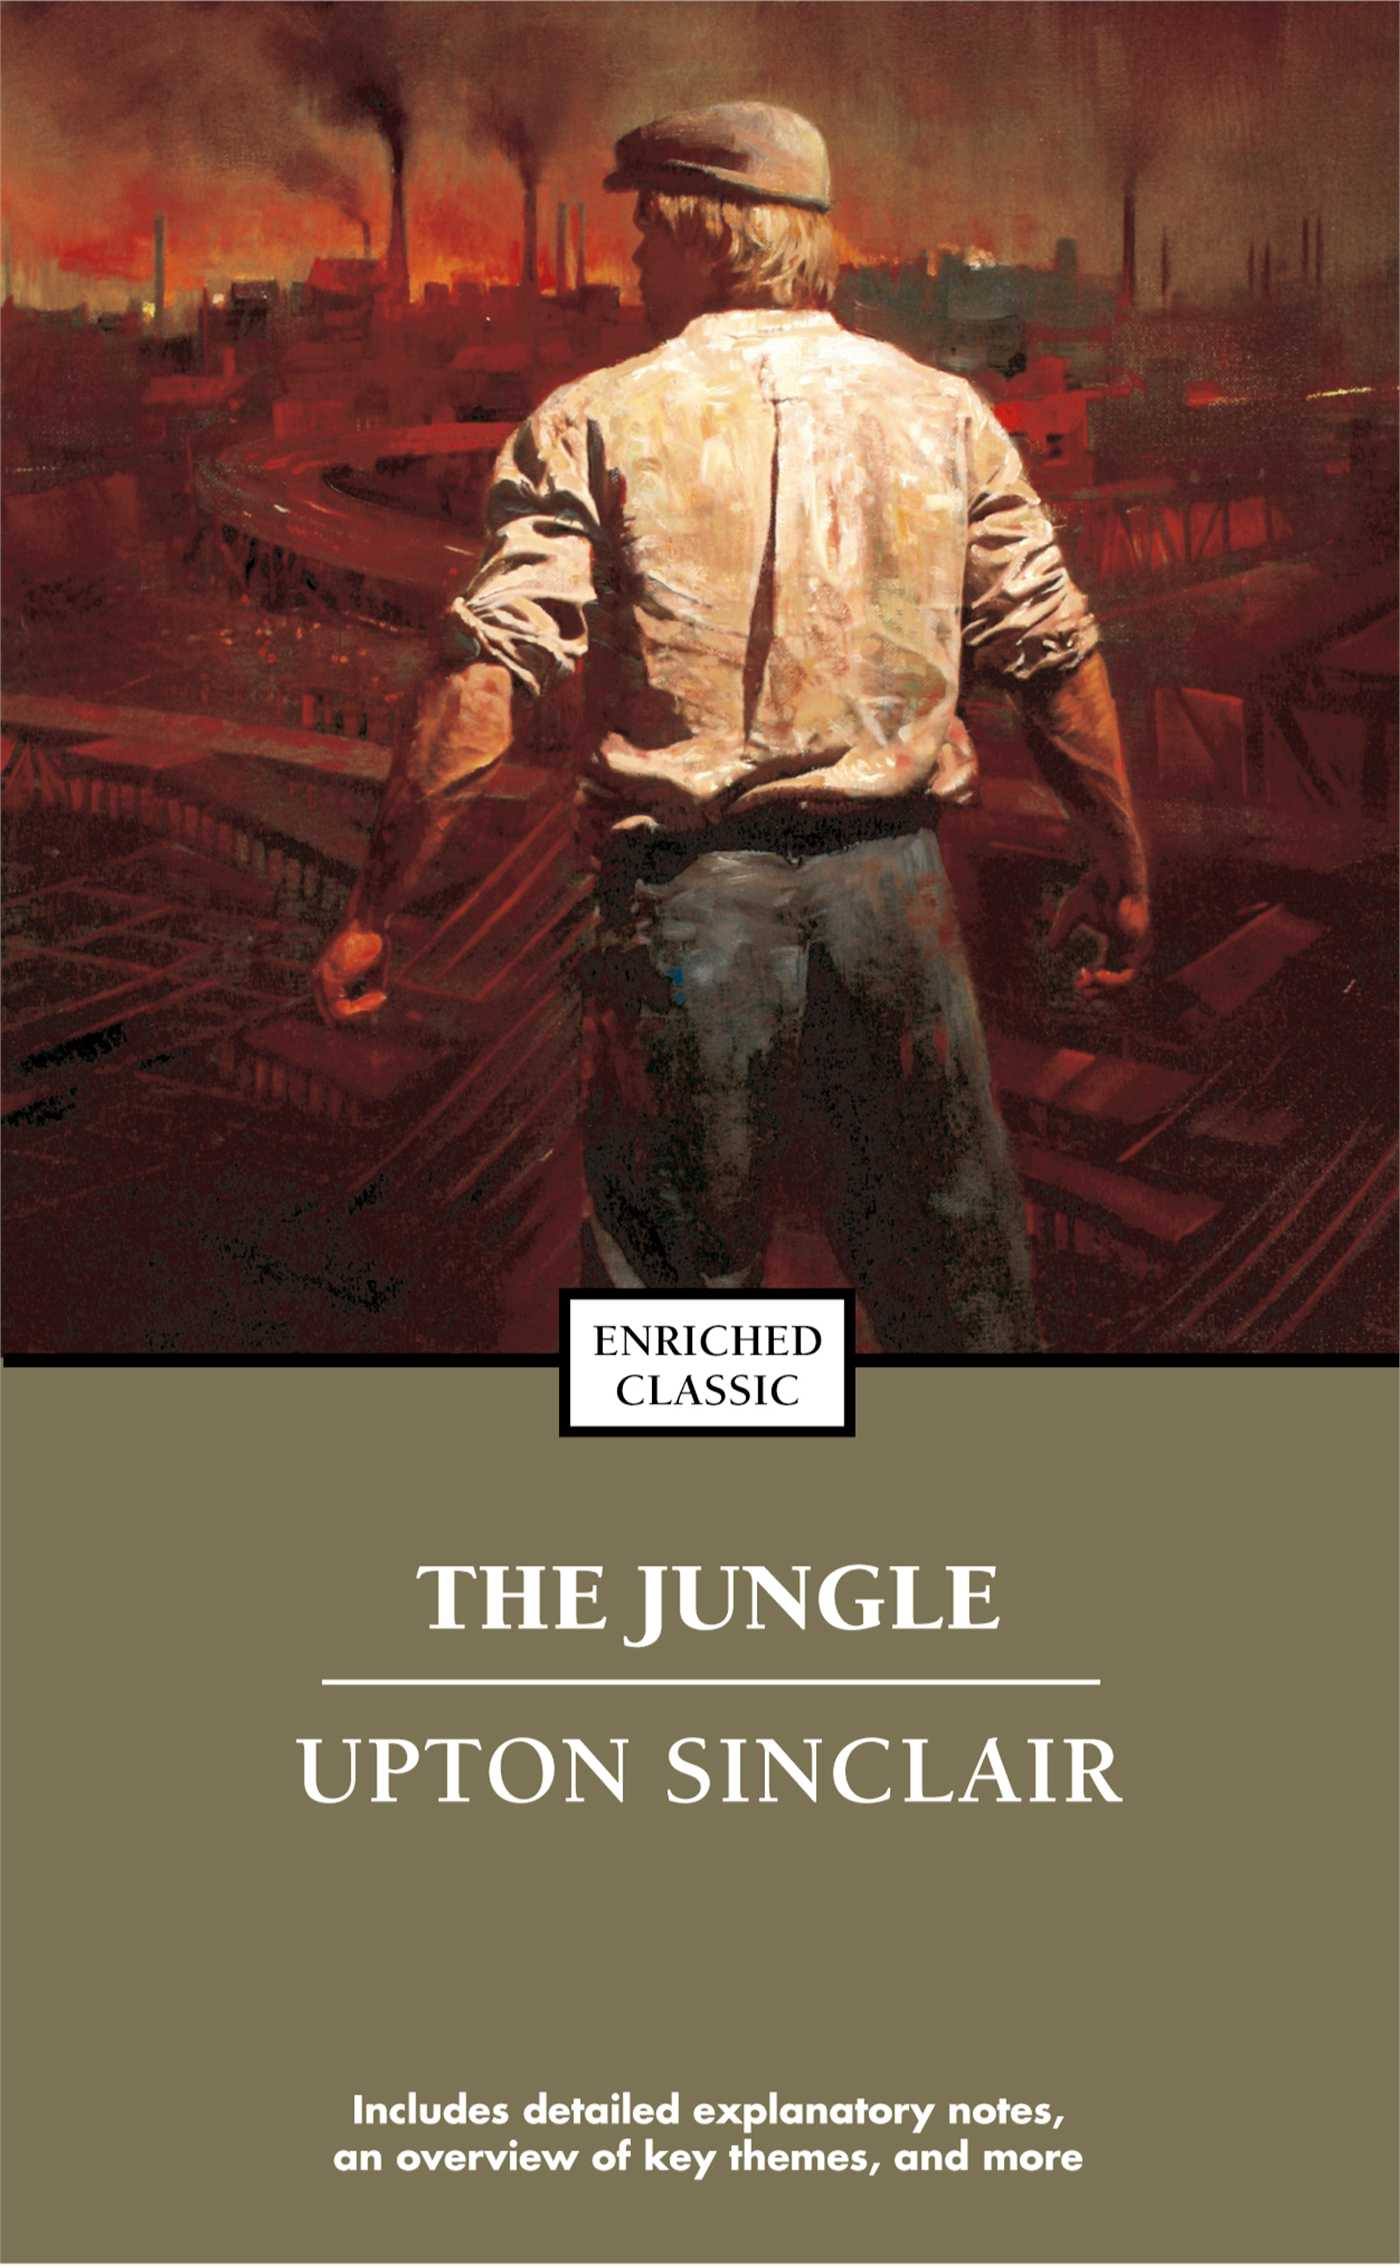 an analysis of a man of many colors in the novel the jungle by upton sinclair By the end of the jungle, jurgis is satisfied with his place in society and is confident that he can help improve society for everyone he realizes that alone, as an individual, he cannot expect to accomplish much however, as an individual who comprises part of a larger group, he can accomplish many things in the beginning of the novel, jurgis is.